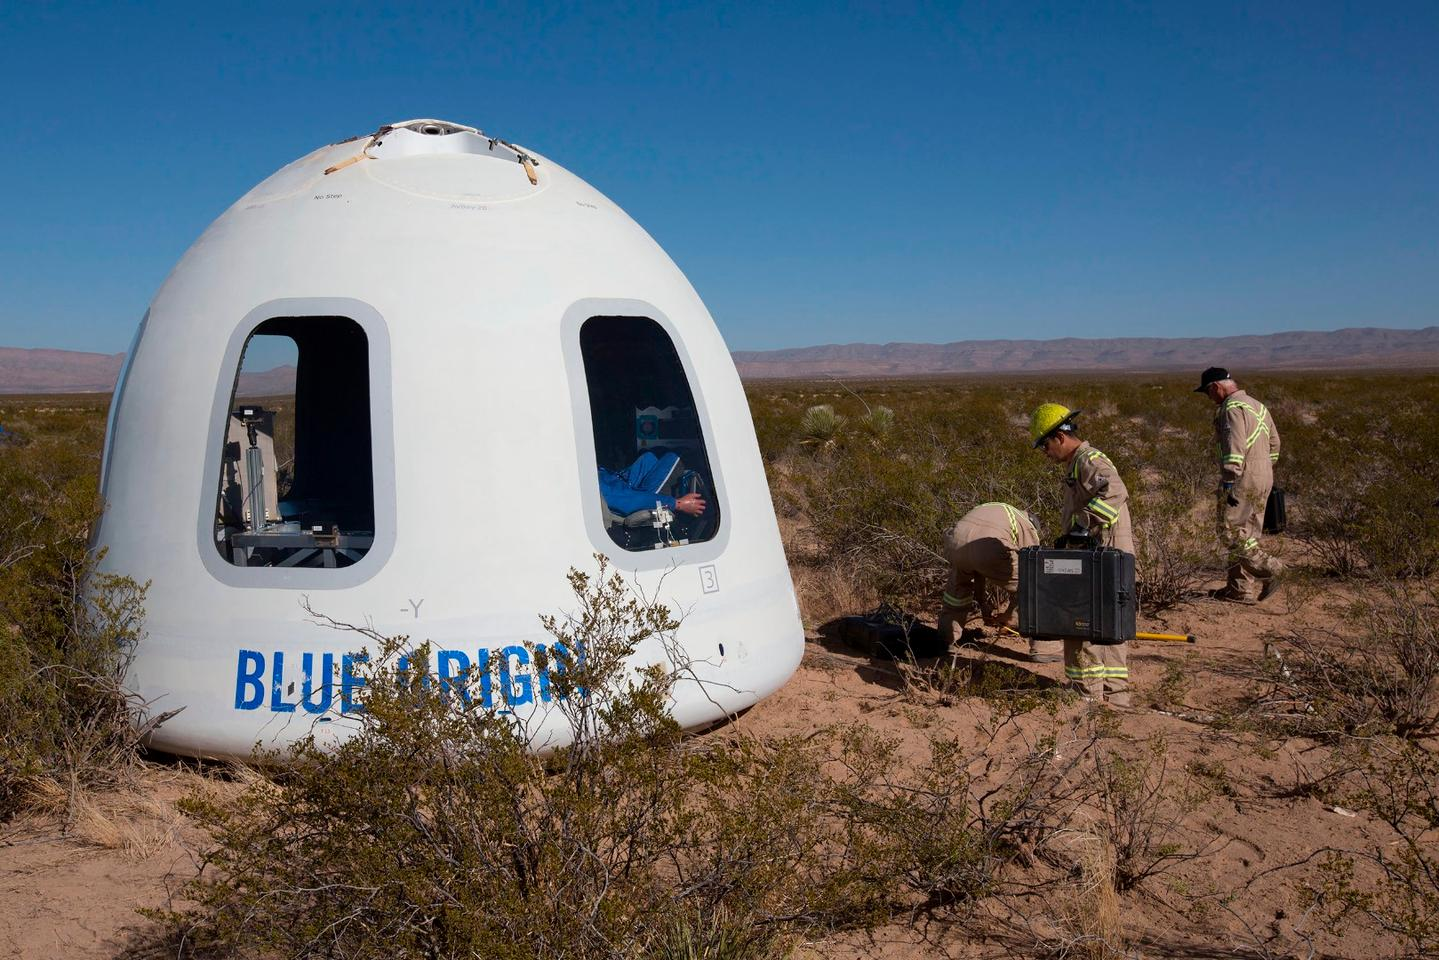 Blue Origin Crew Capsule with flight mannequin inside after recent test flight